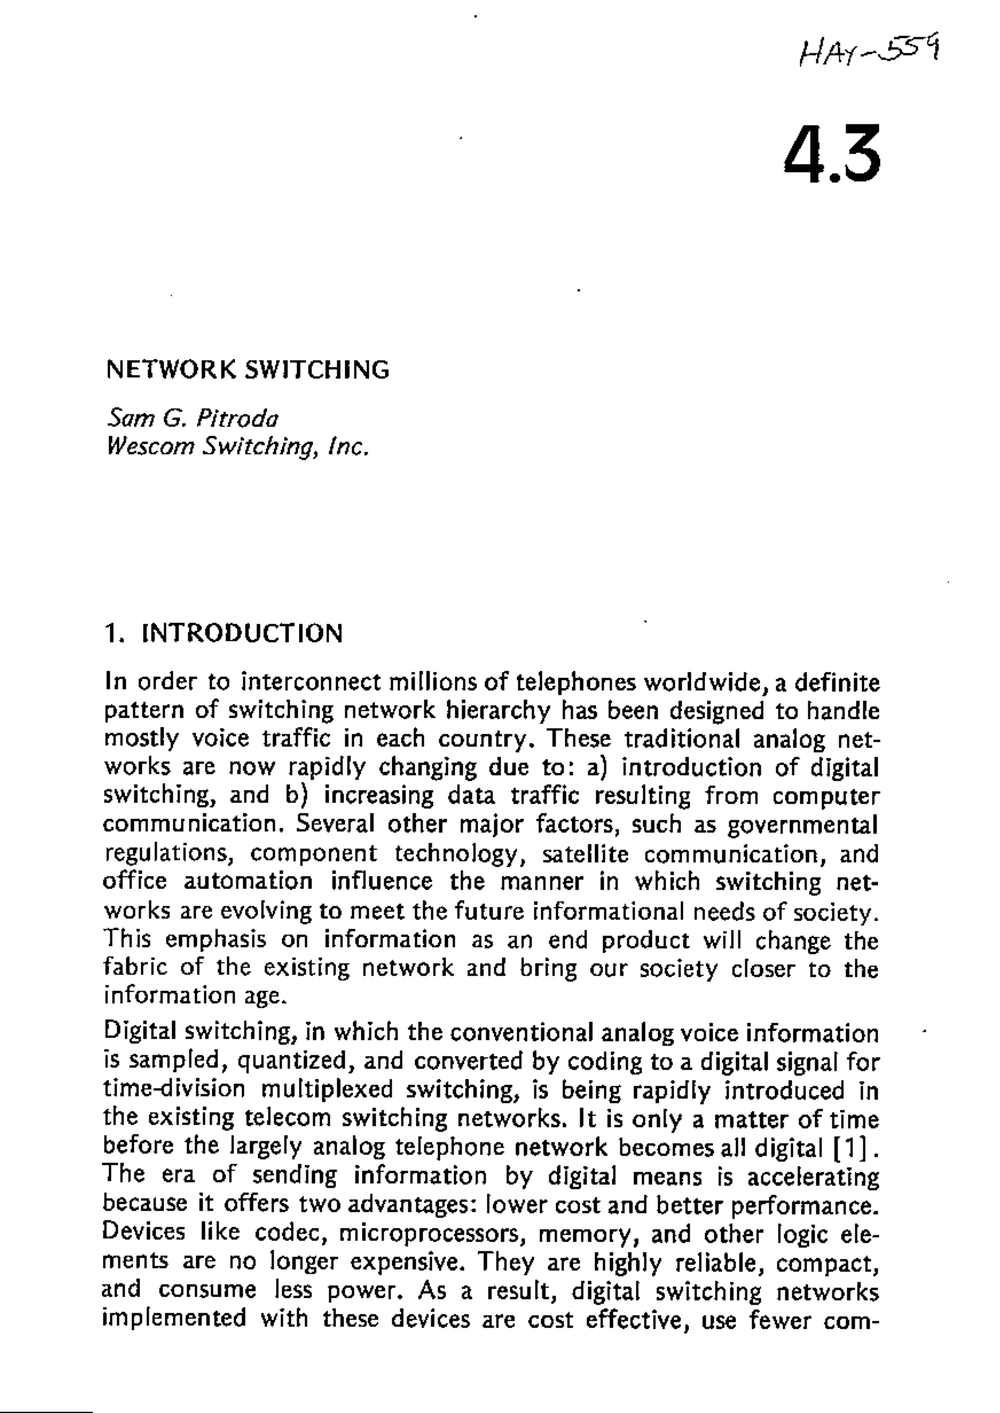 Network Switching, Wells Bindery, Waltham, MA, 1984